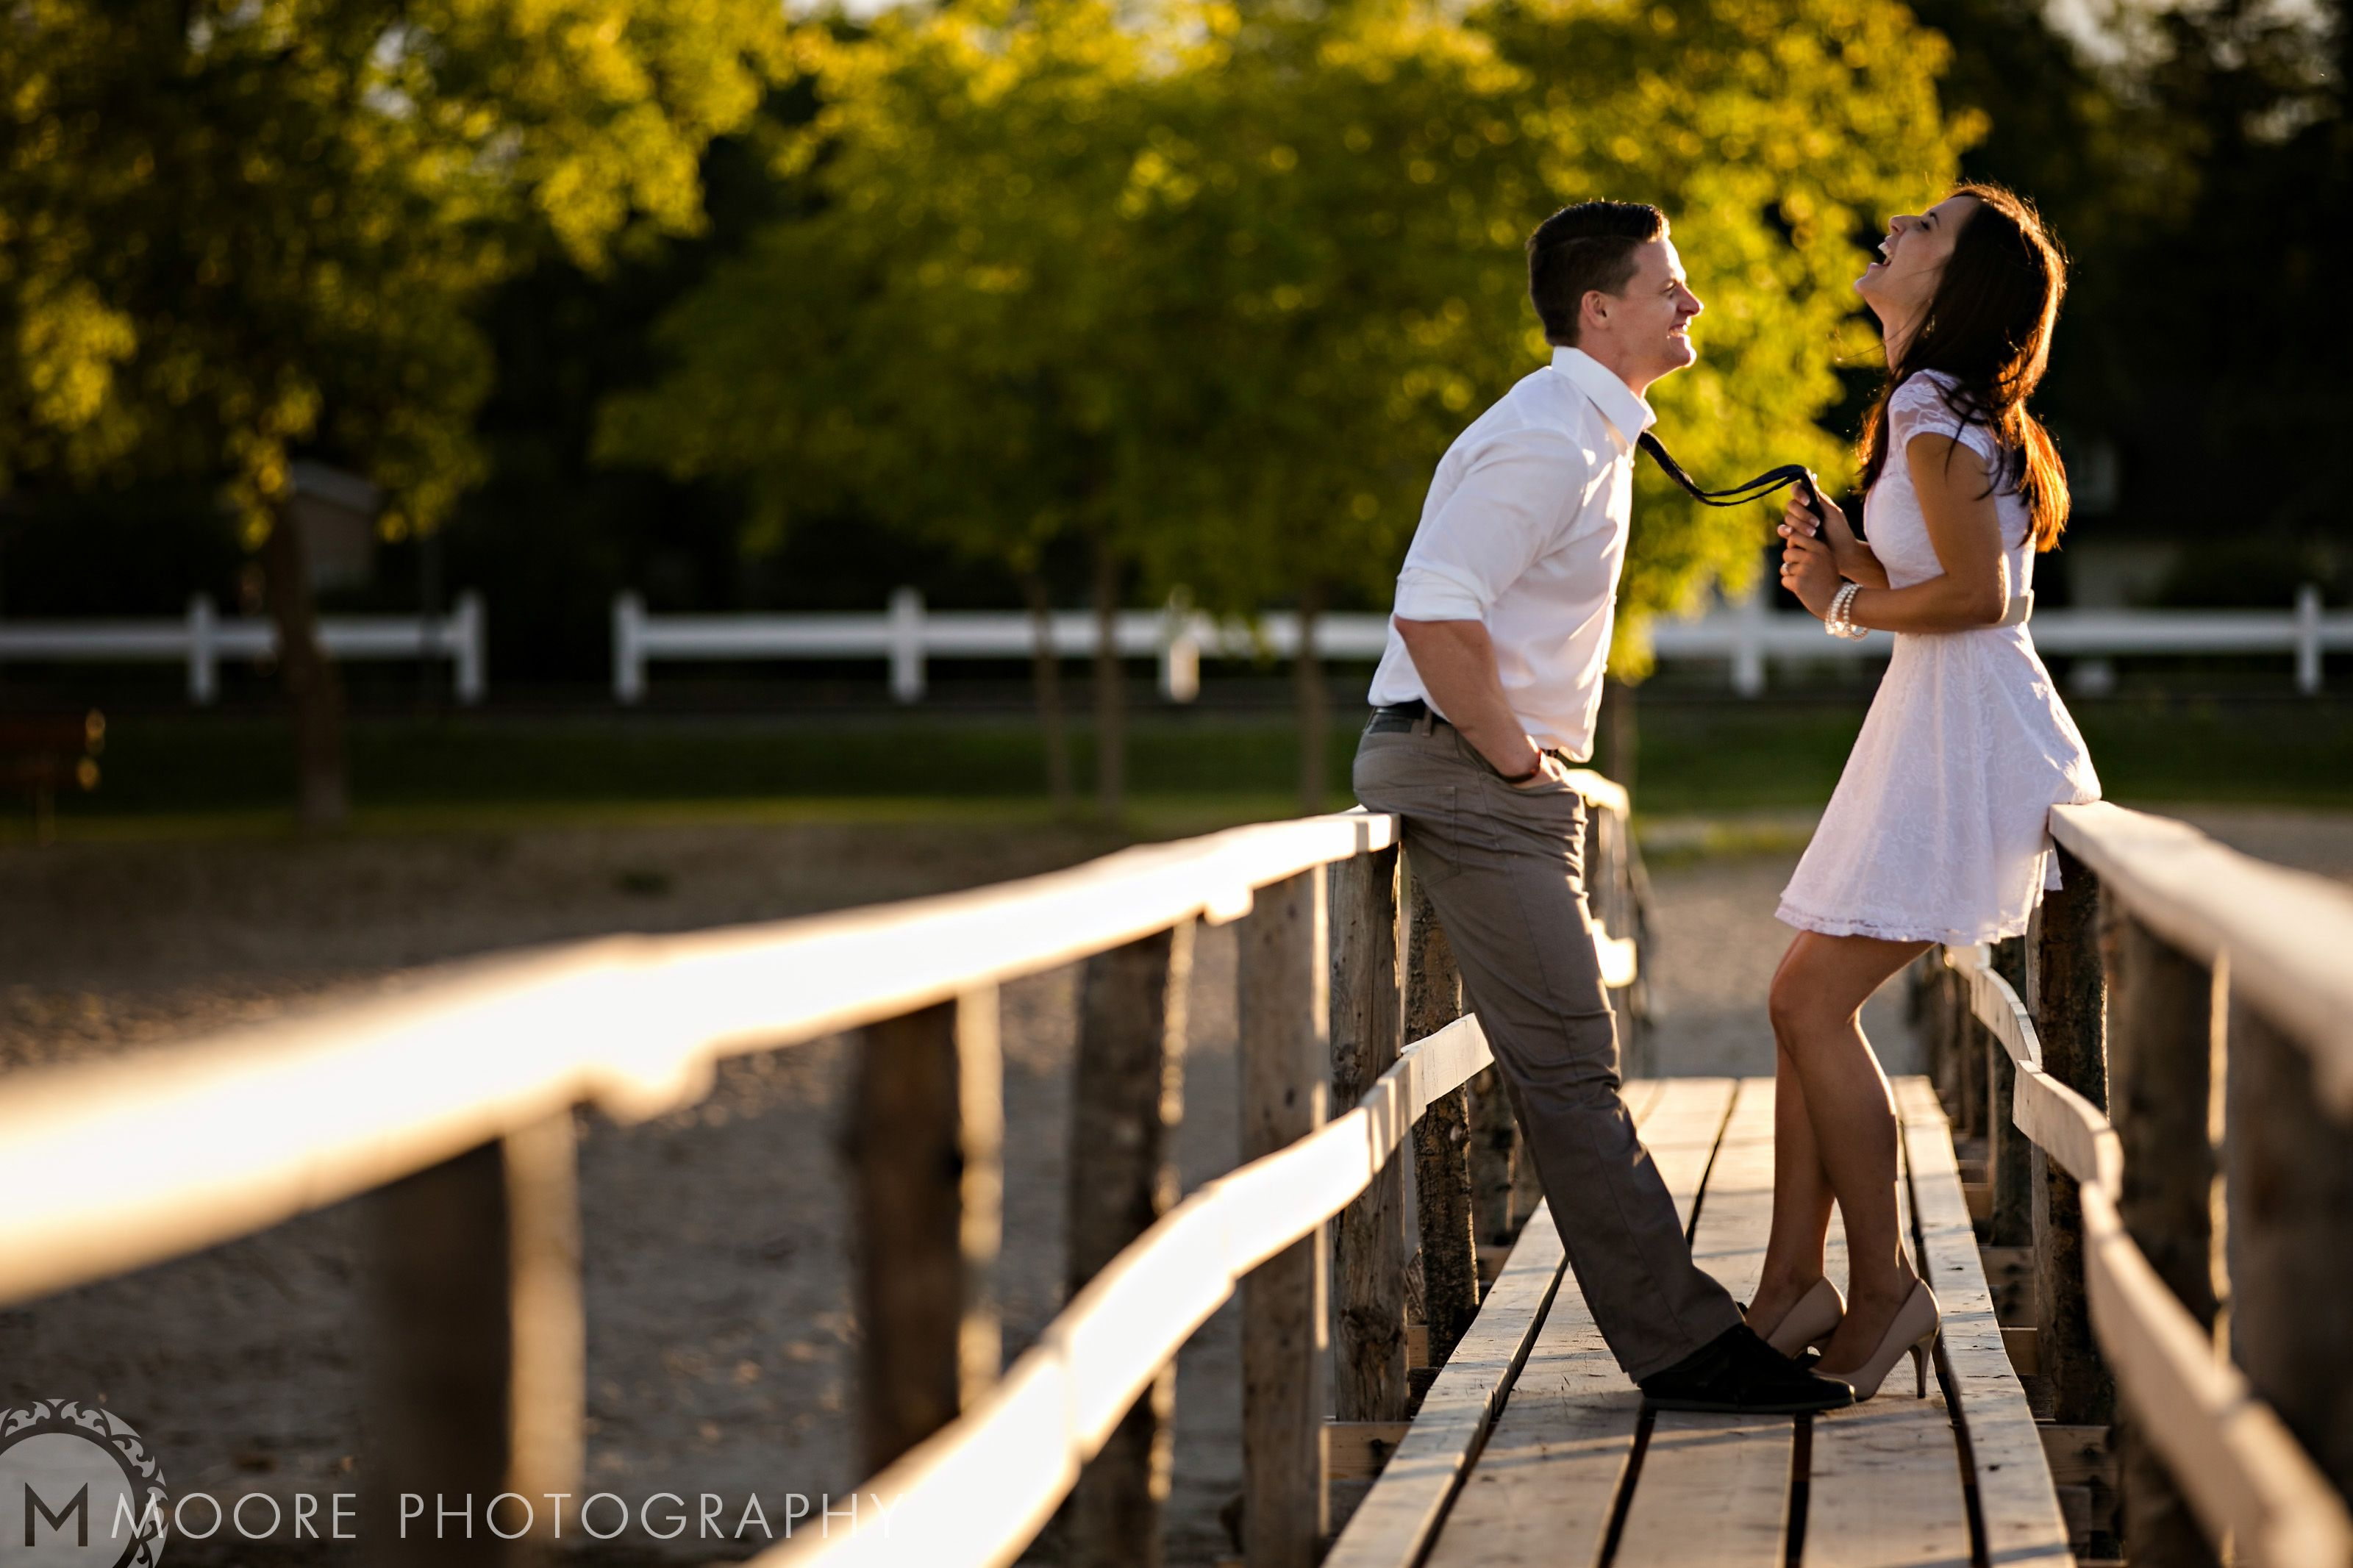 Jenna & Tom › Engaged on the blog... so excited to capture this Wedding on Saturday!  http://moorephotography.ca/blog/2013/08/jenna-tom/